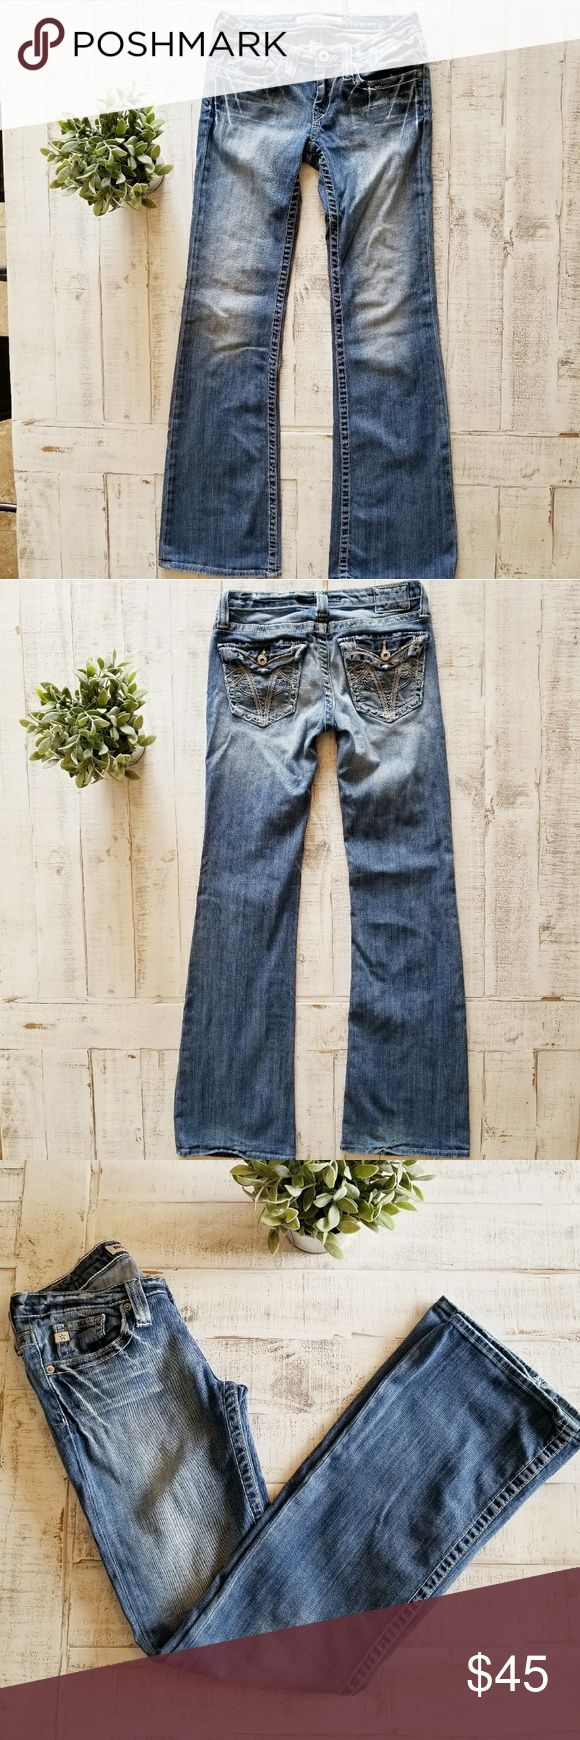 Big Star Sweet Ultra Low Rise Jeans Big Star Sweet Ultra Low Rise jeans in an adorable wash and fit! Very cute jeans in good used condition with minor wear on the hem as shown.   Size 26L Big Star Jeans